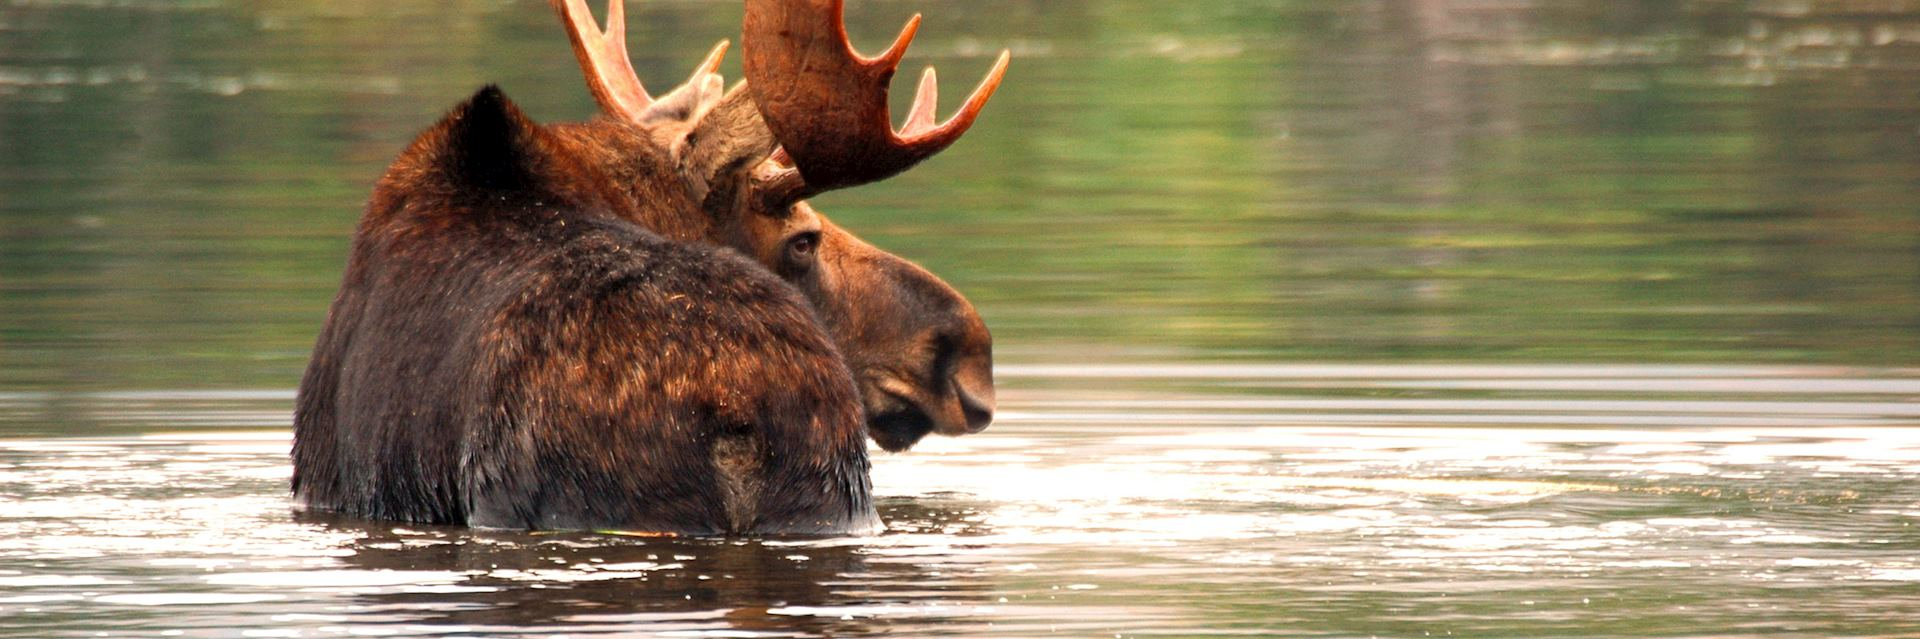 Bull moose in New England